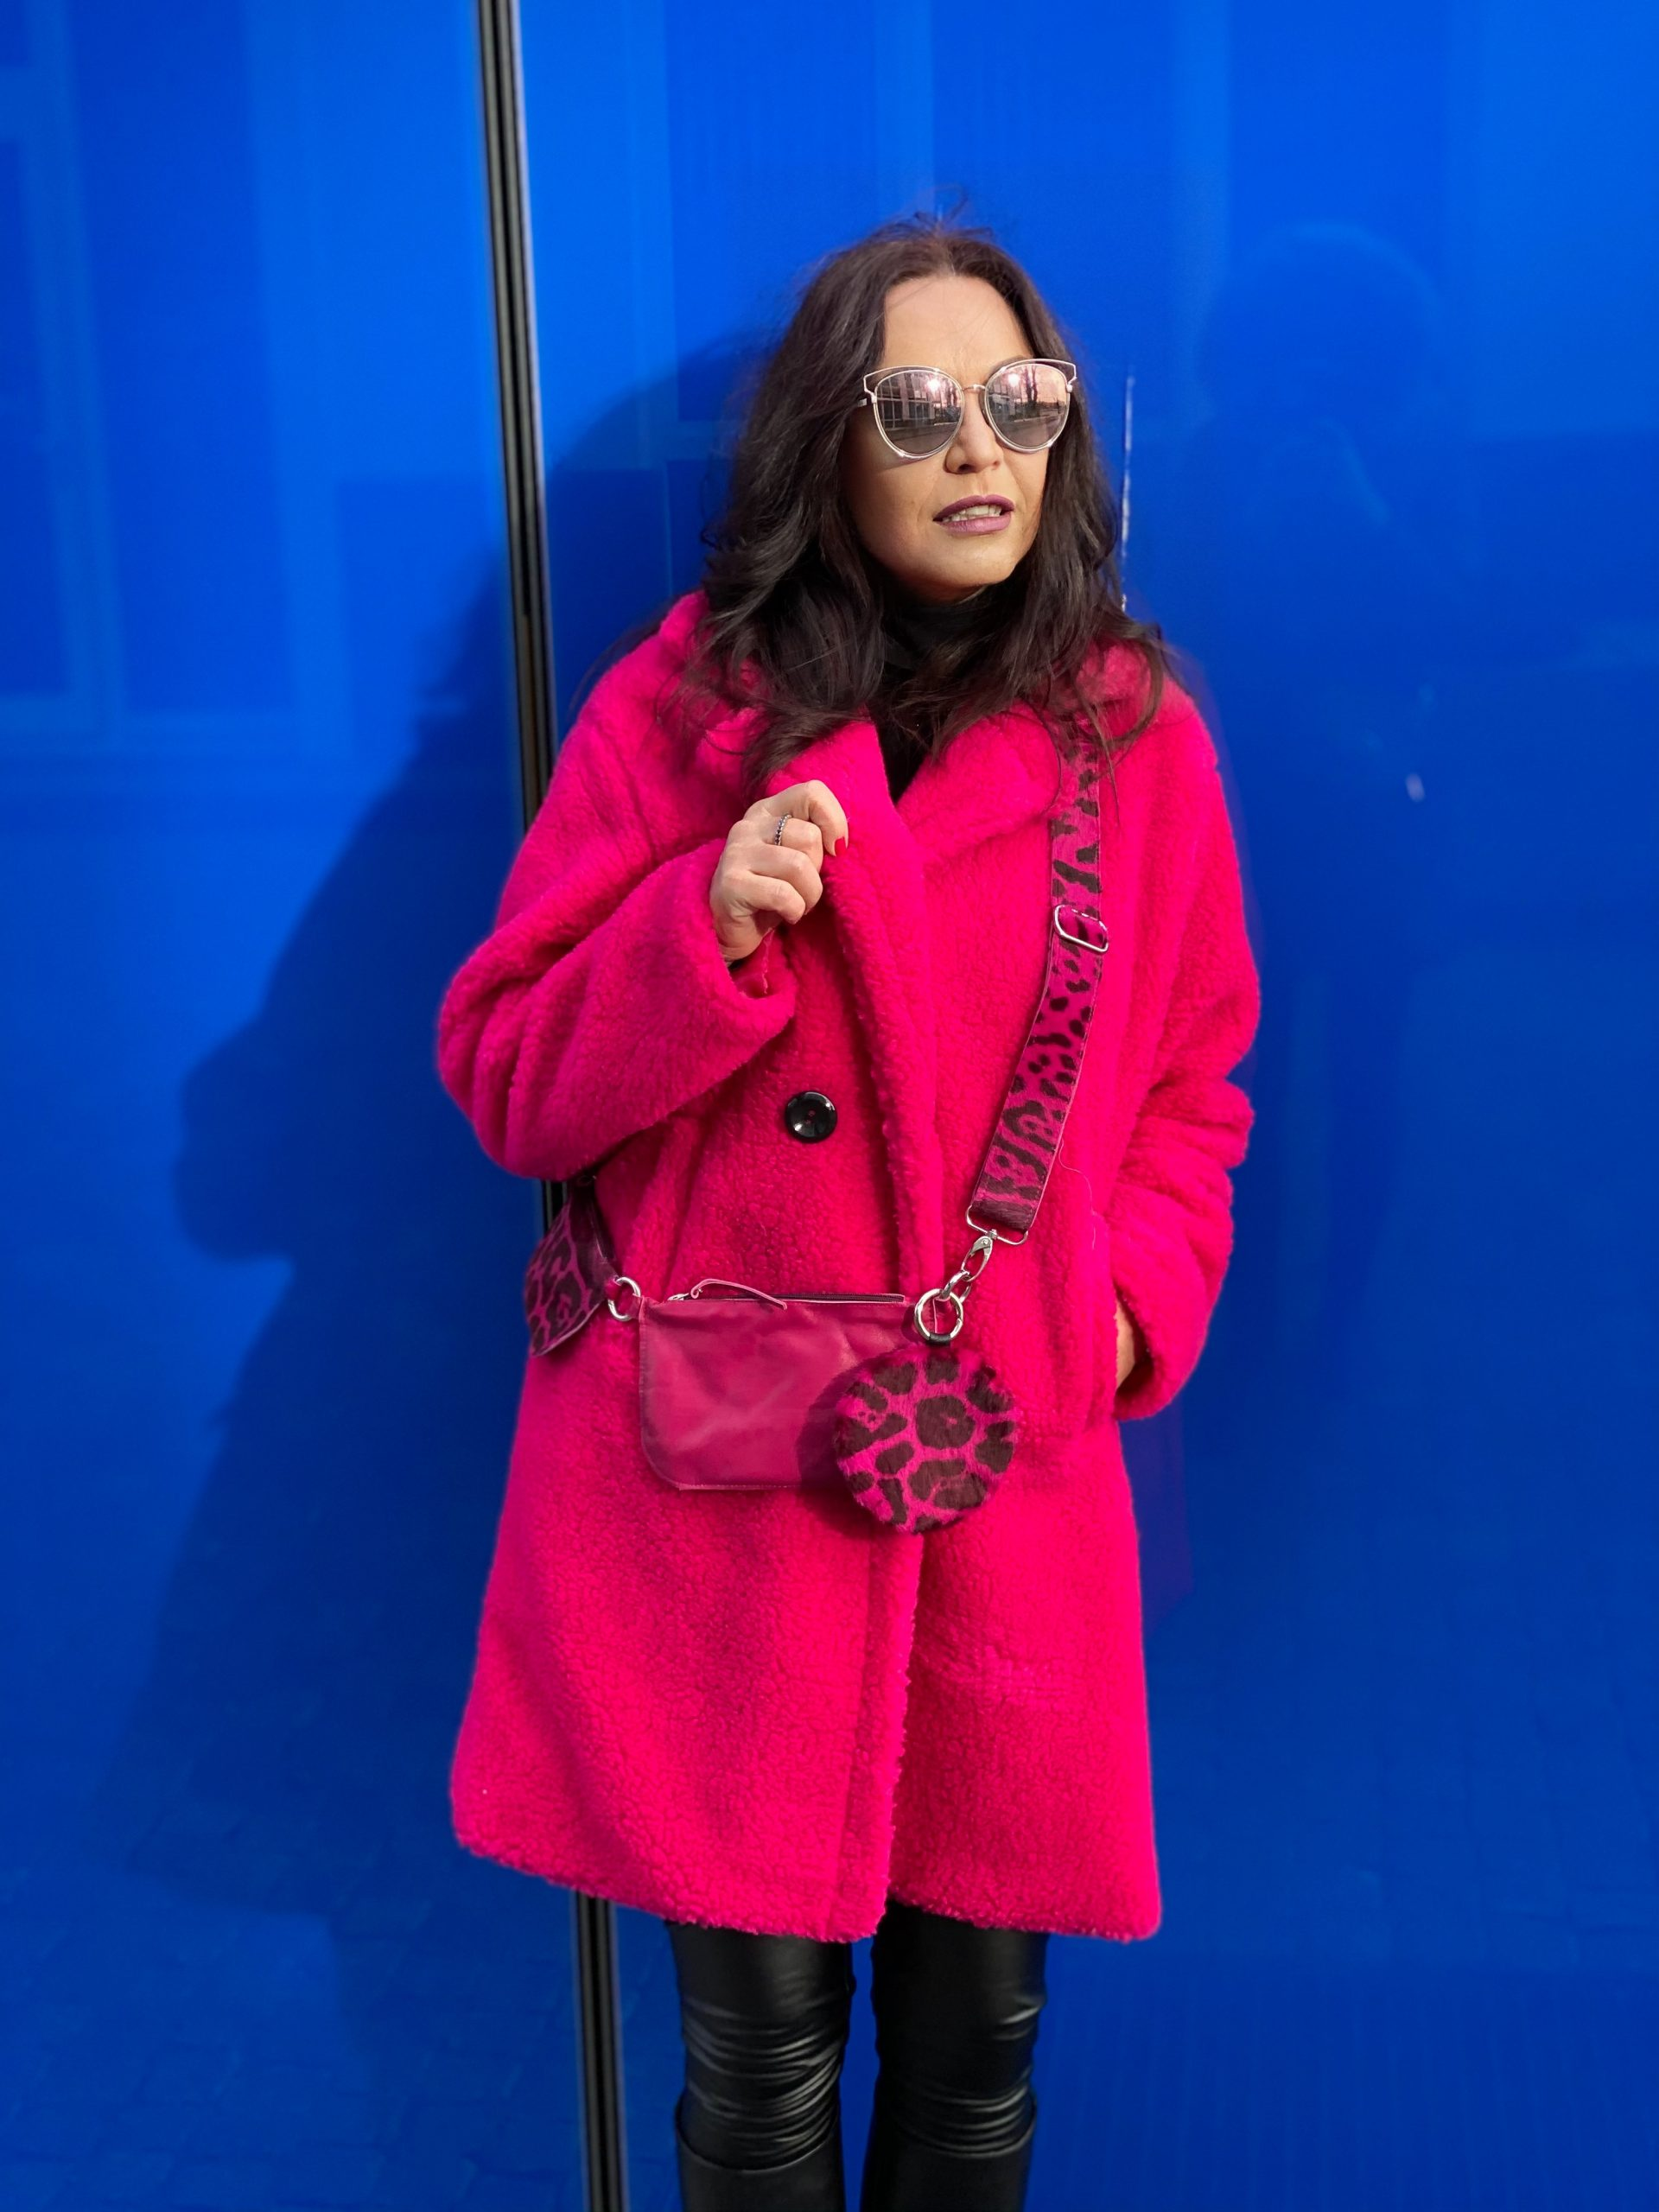 Colorsplash, purple coat, Coat Made in Italy, Sibylle bag, Modafein Store Starnberg, Dior shades, winteroutfit, Winterstyle, streetstyle, streetfashion, streetwear, ageless fashion, ageless style, cochastyle, Fashionblog Augsburg